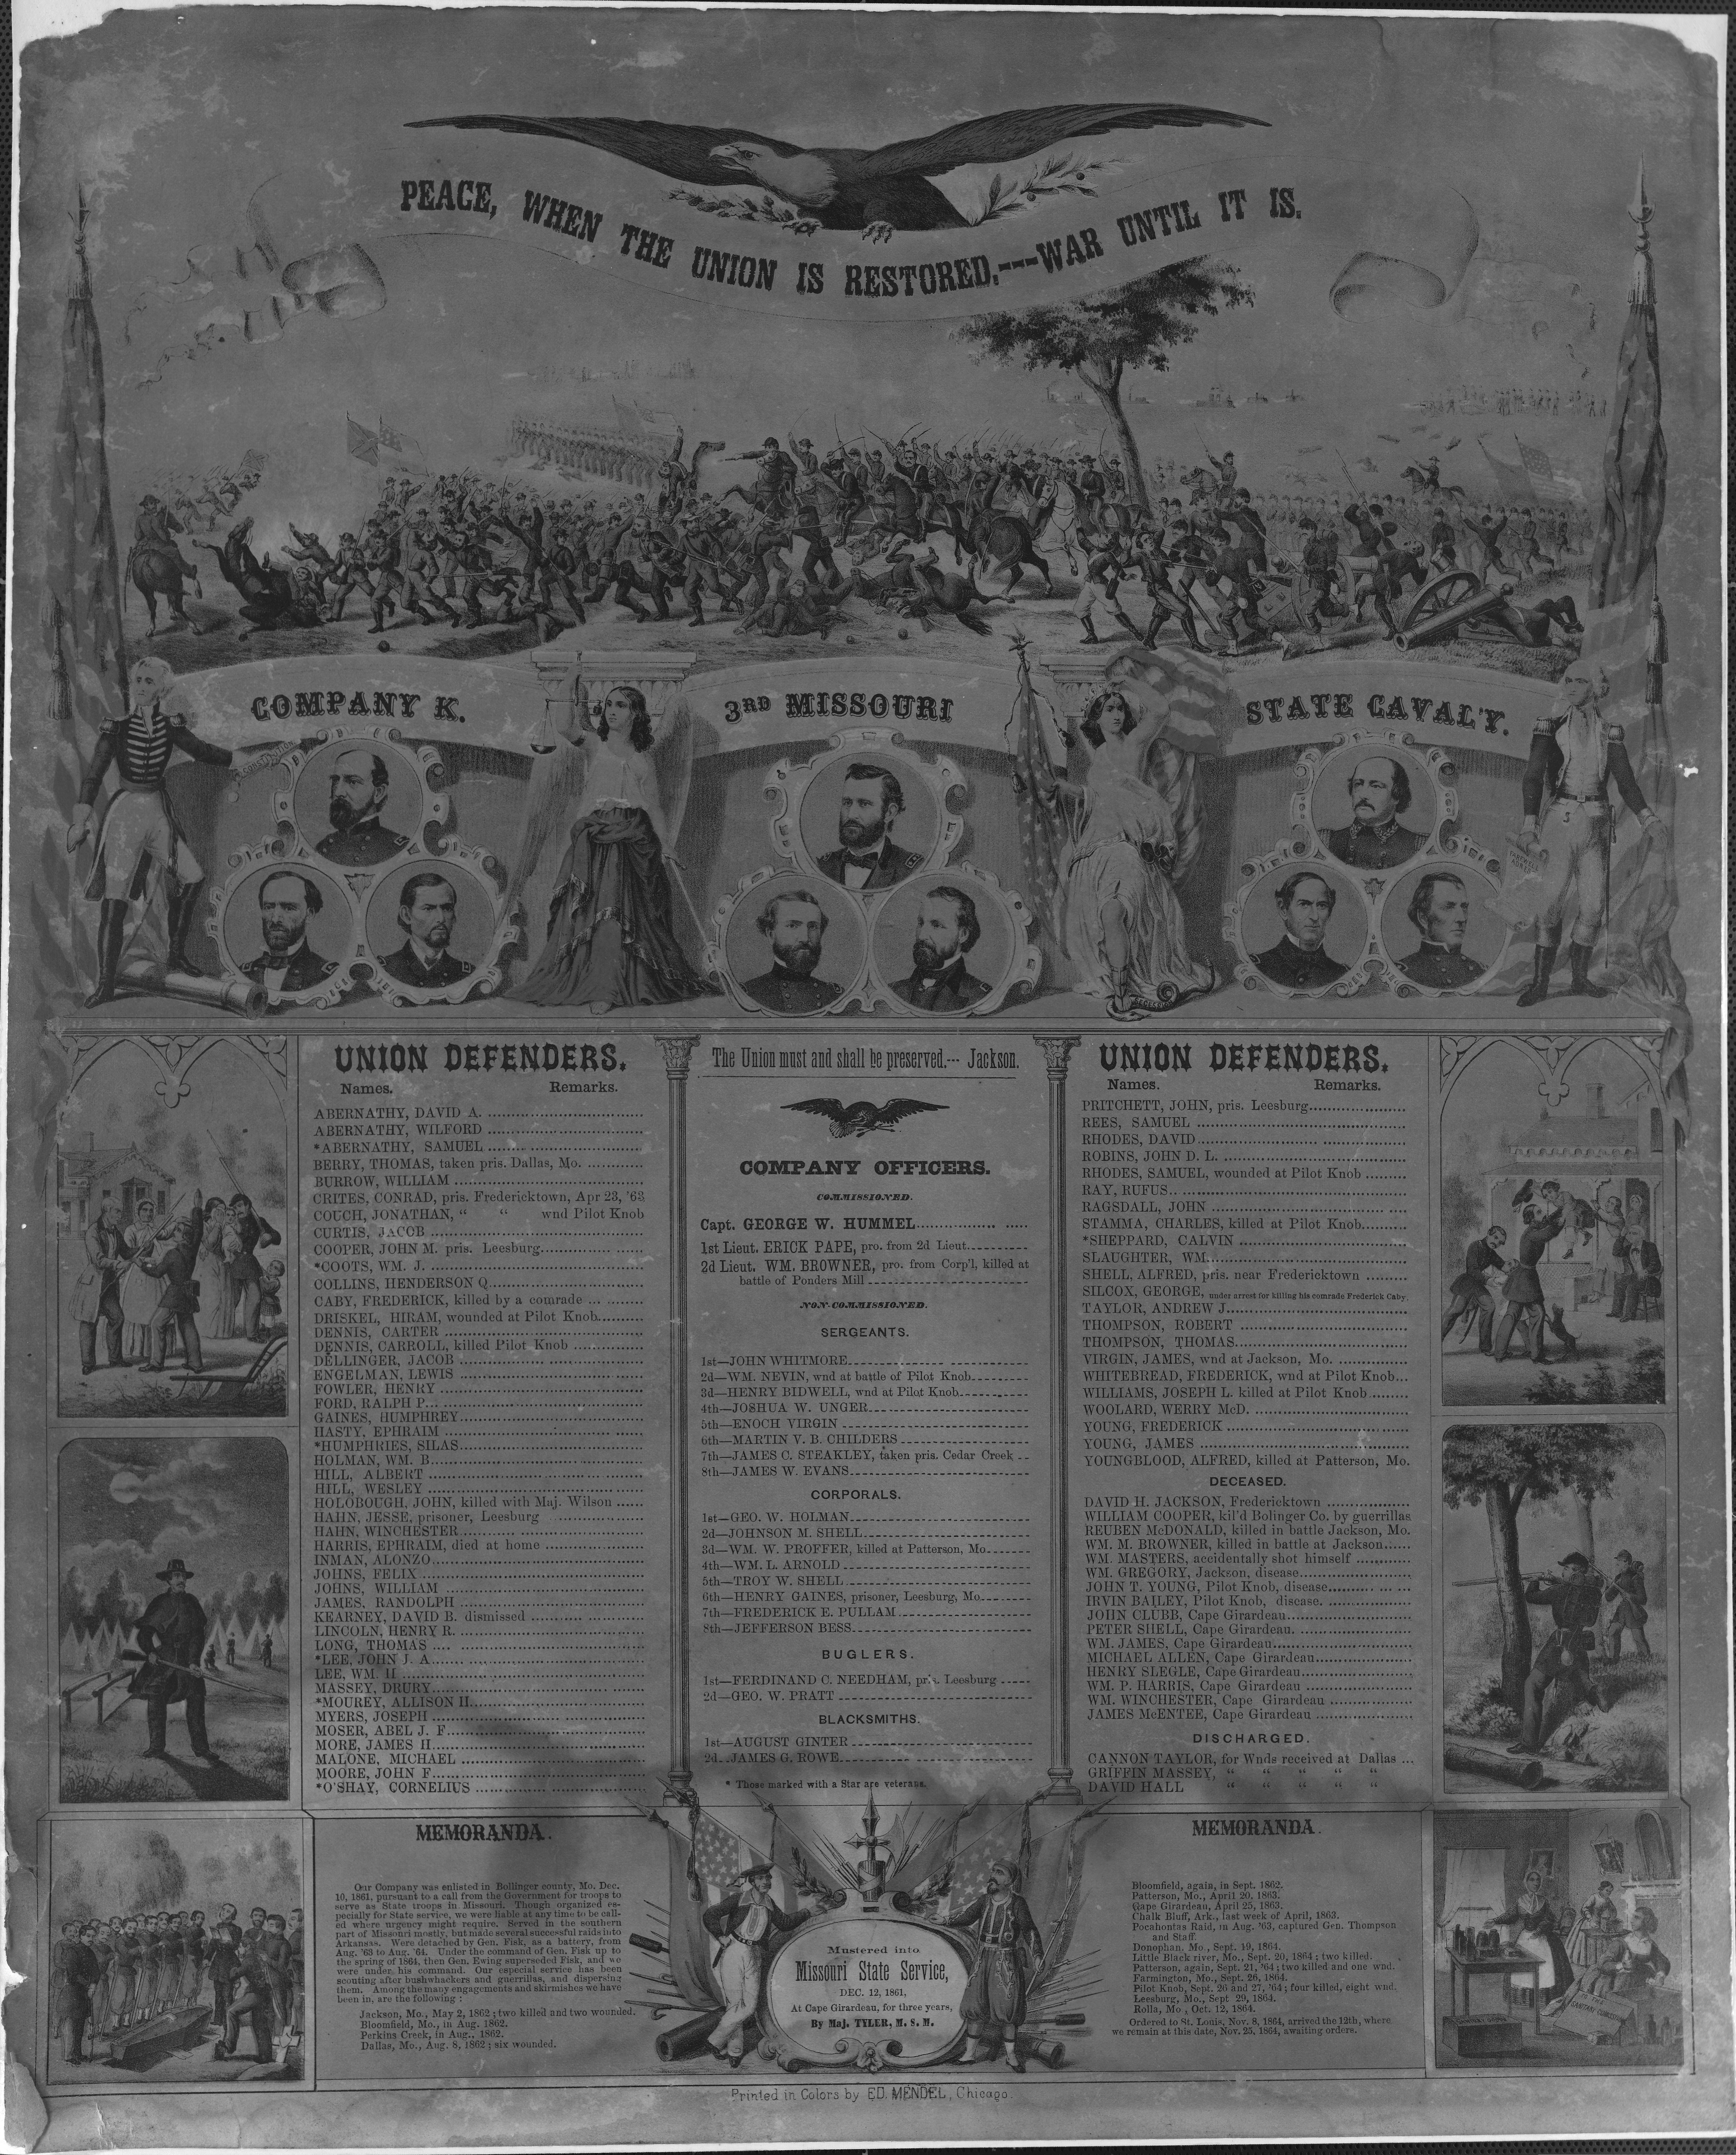 Illuminated roster of Missouri troops (Union), 3rd Cavalry